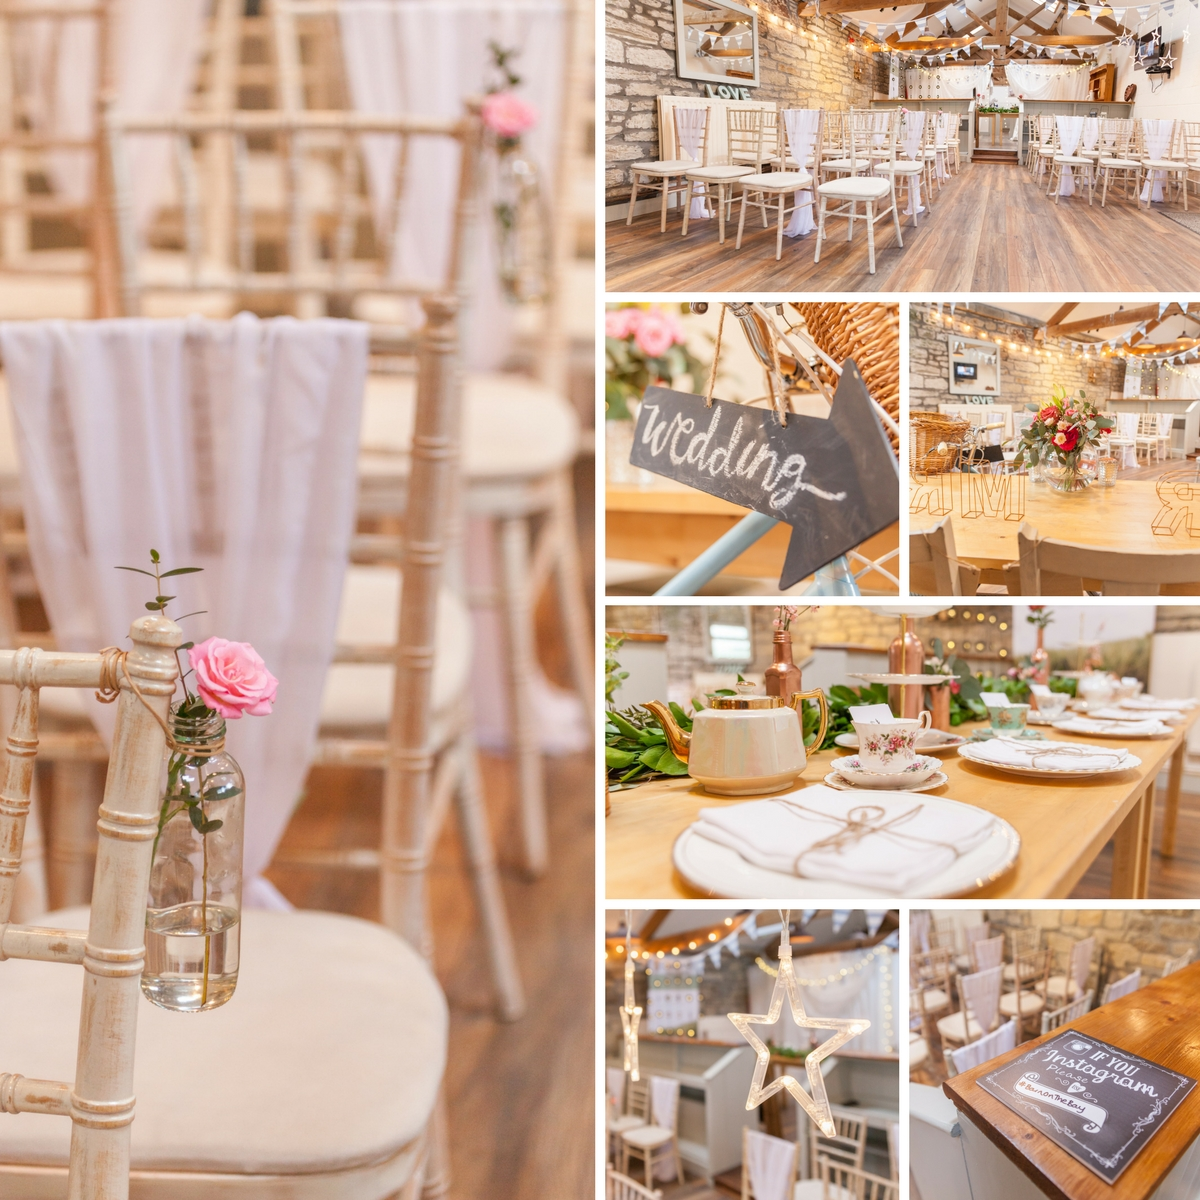 Rustic wedding venue styling